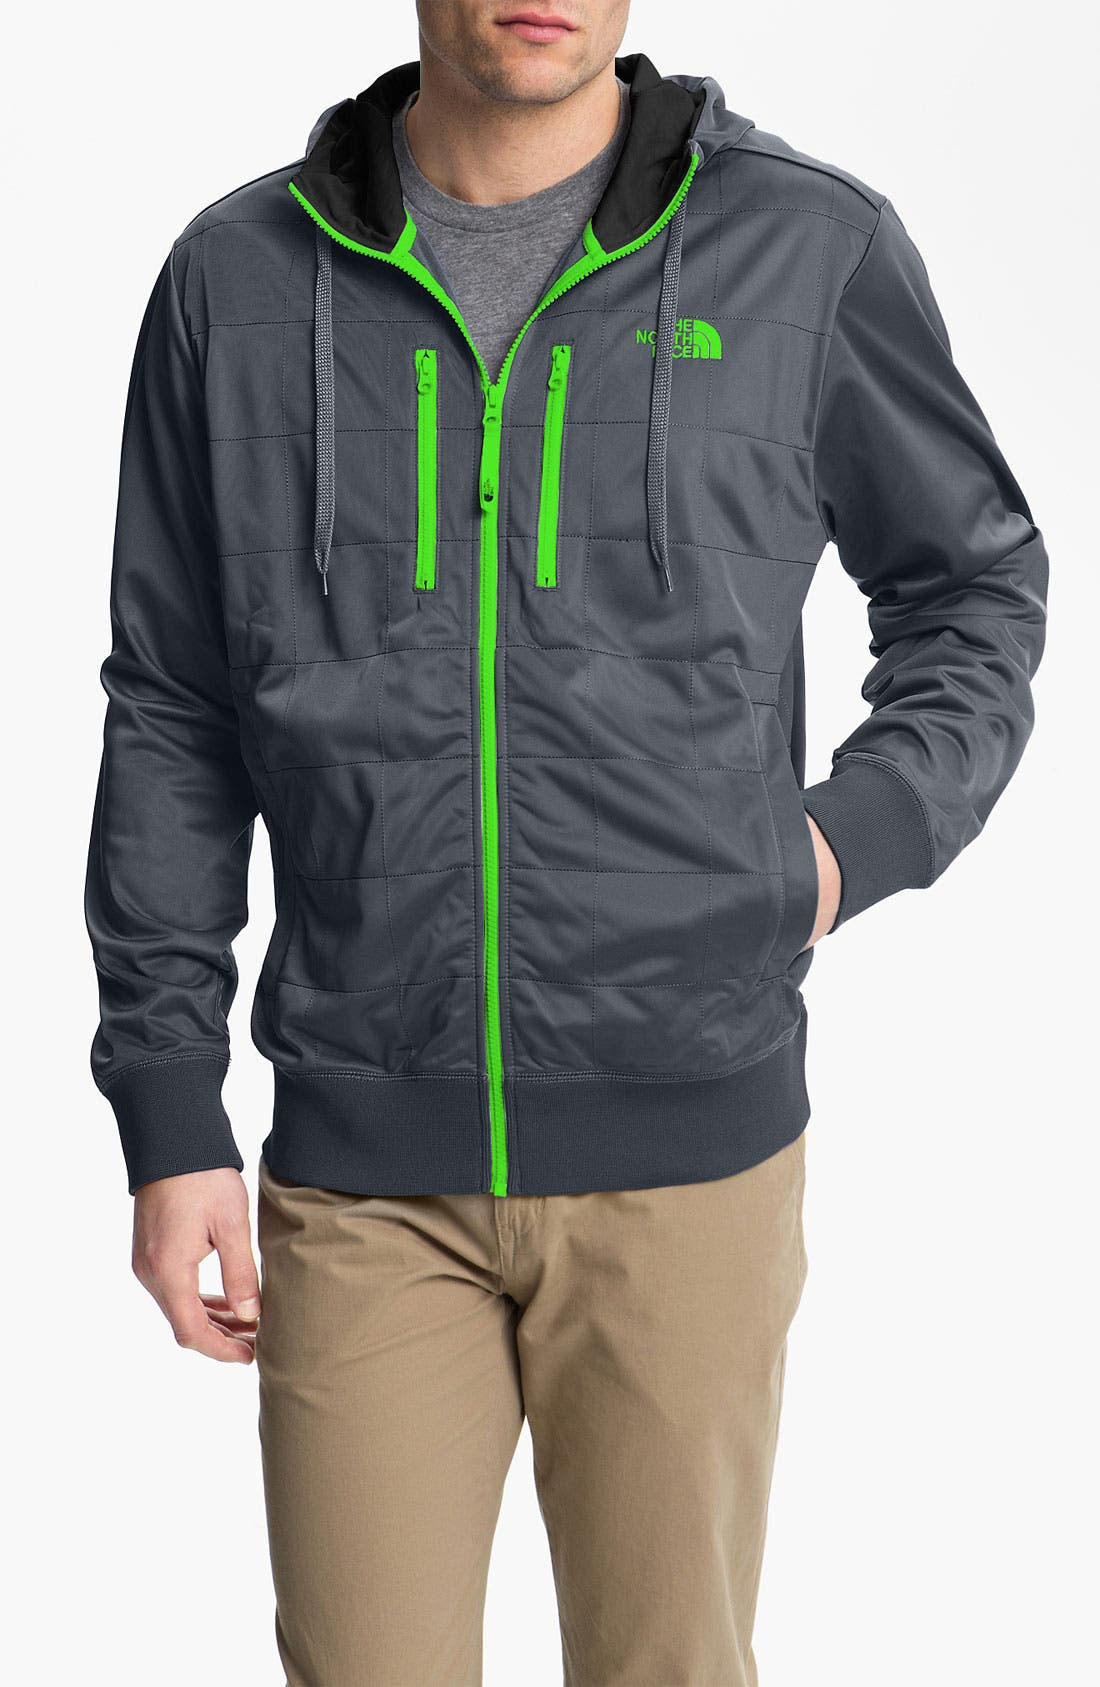 Main Image - The North Face 'Sandoval' Zip Hoodie